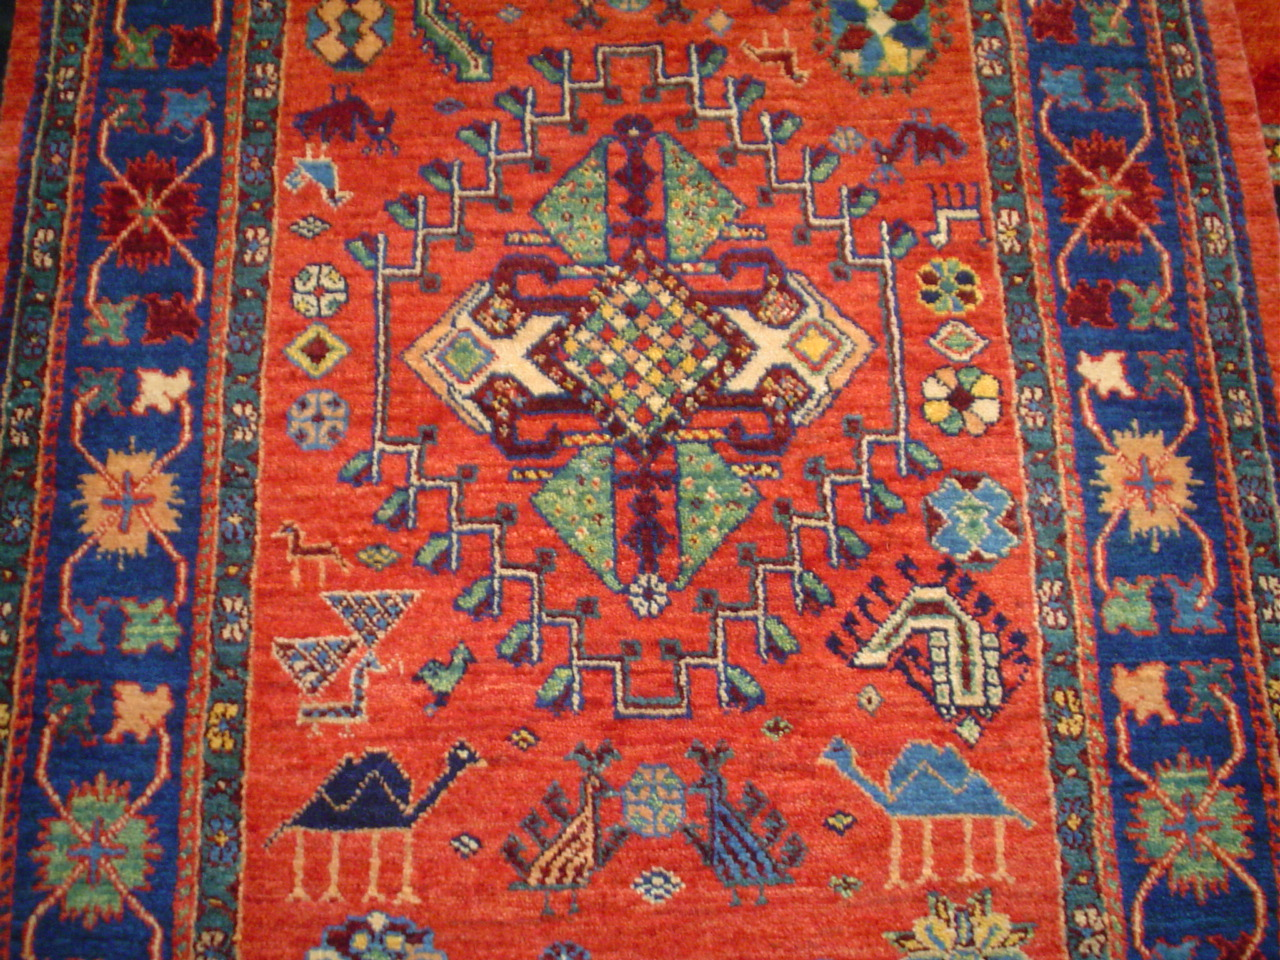 patio of identify antique inspiration ideas bathroom persian oriental and types rugged formats rugs stunning simple rug